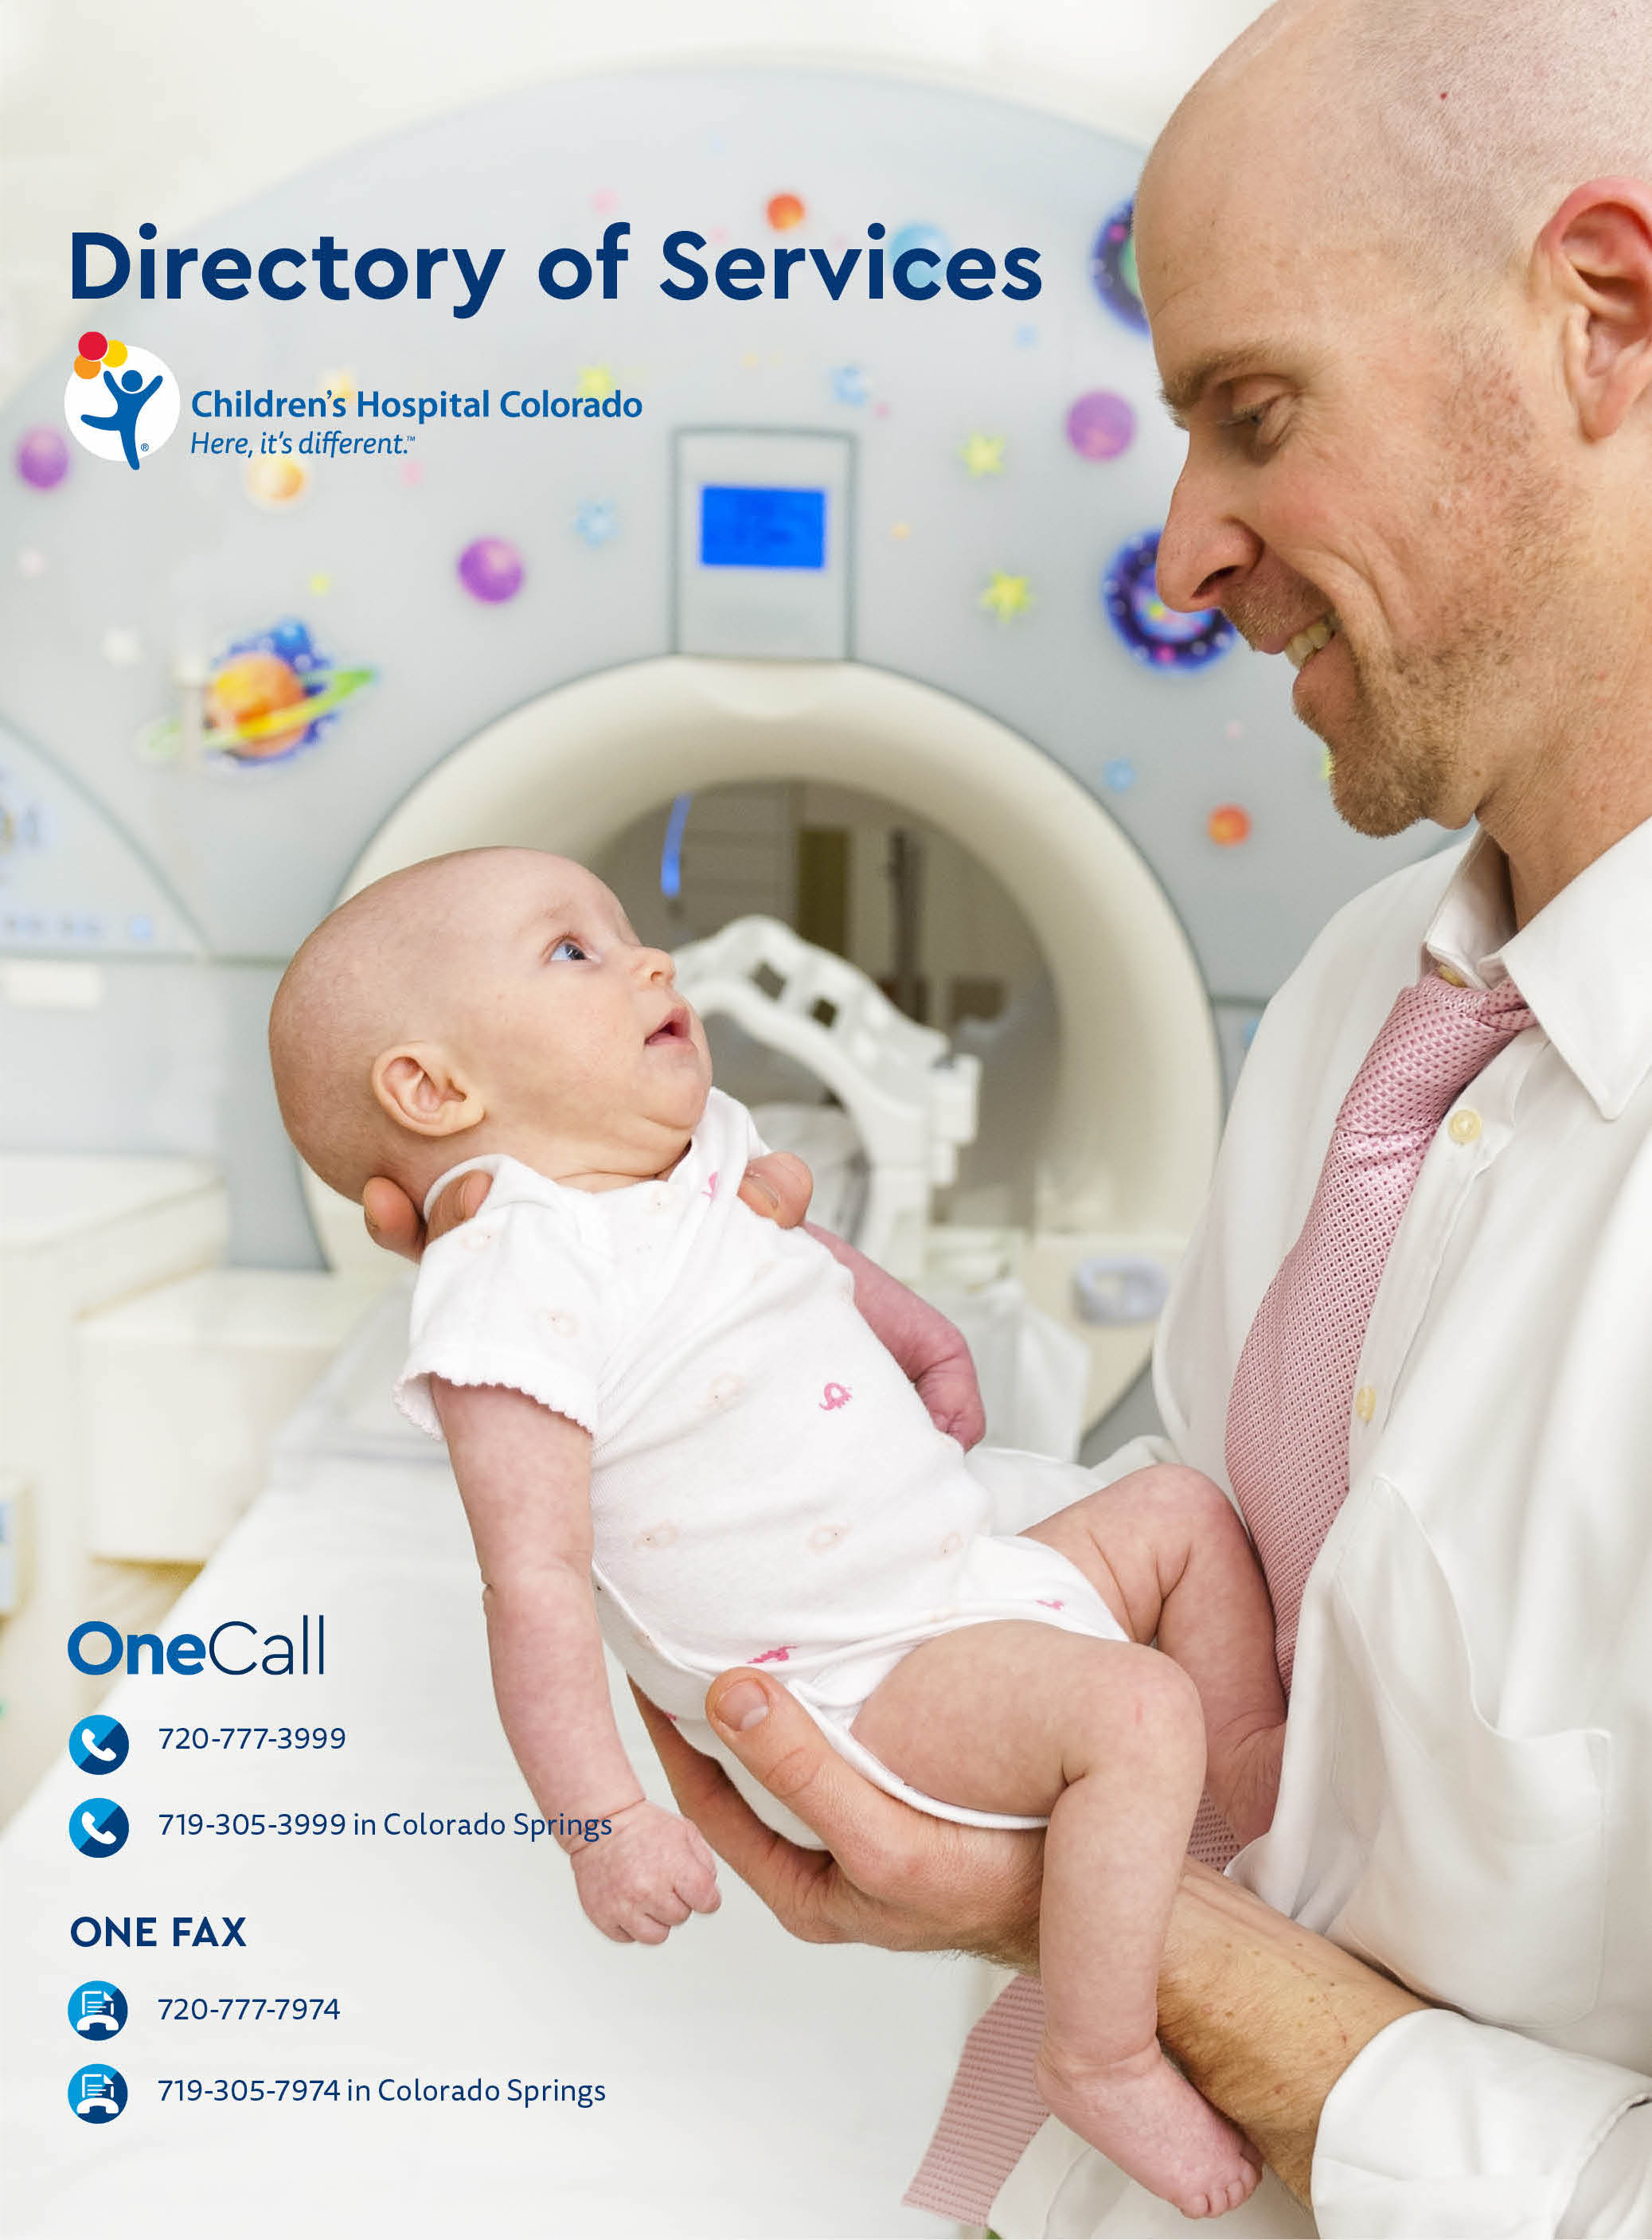 The cover image of the 2018 Children's Hospital Colorado Directory of Services book with a doctor listening to a little boy's chest using her stethoscope. He is wearing a t-shirt with blue stripes and she is wearing a white lab coat.